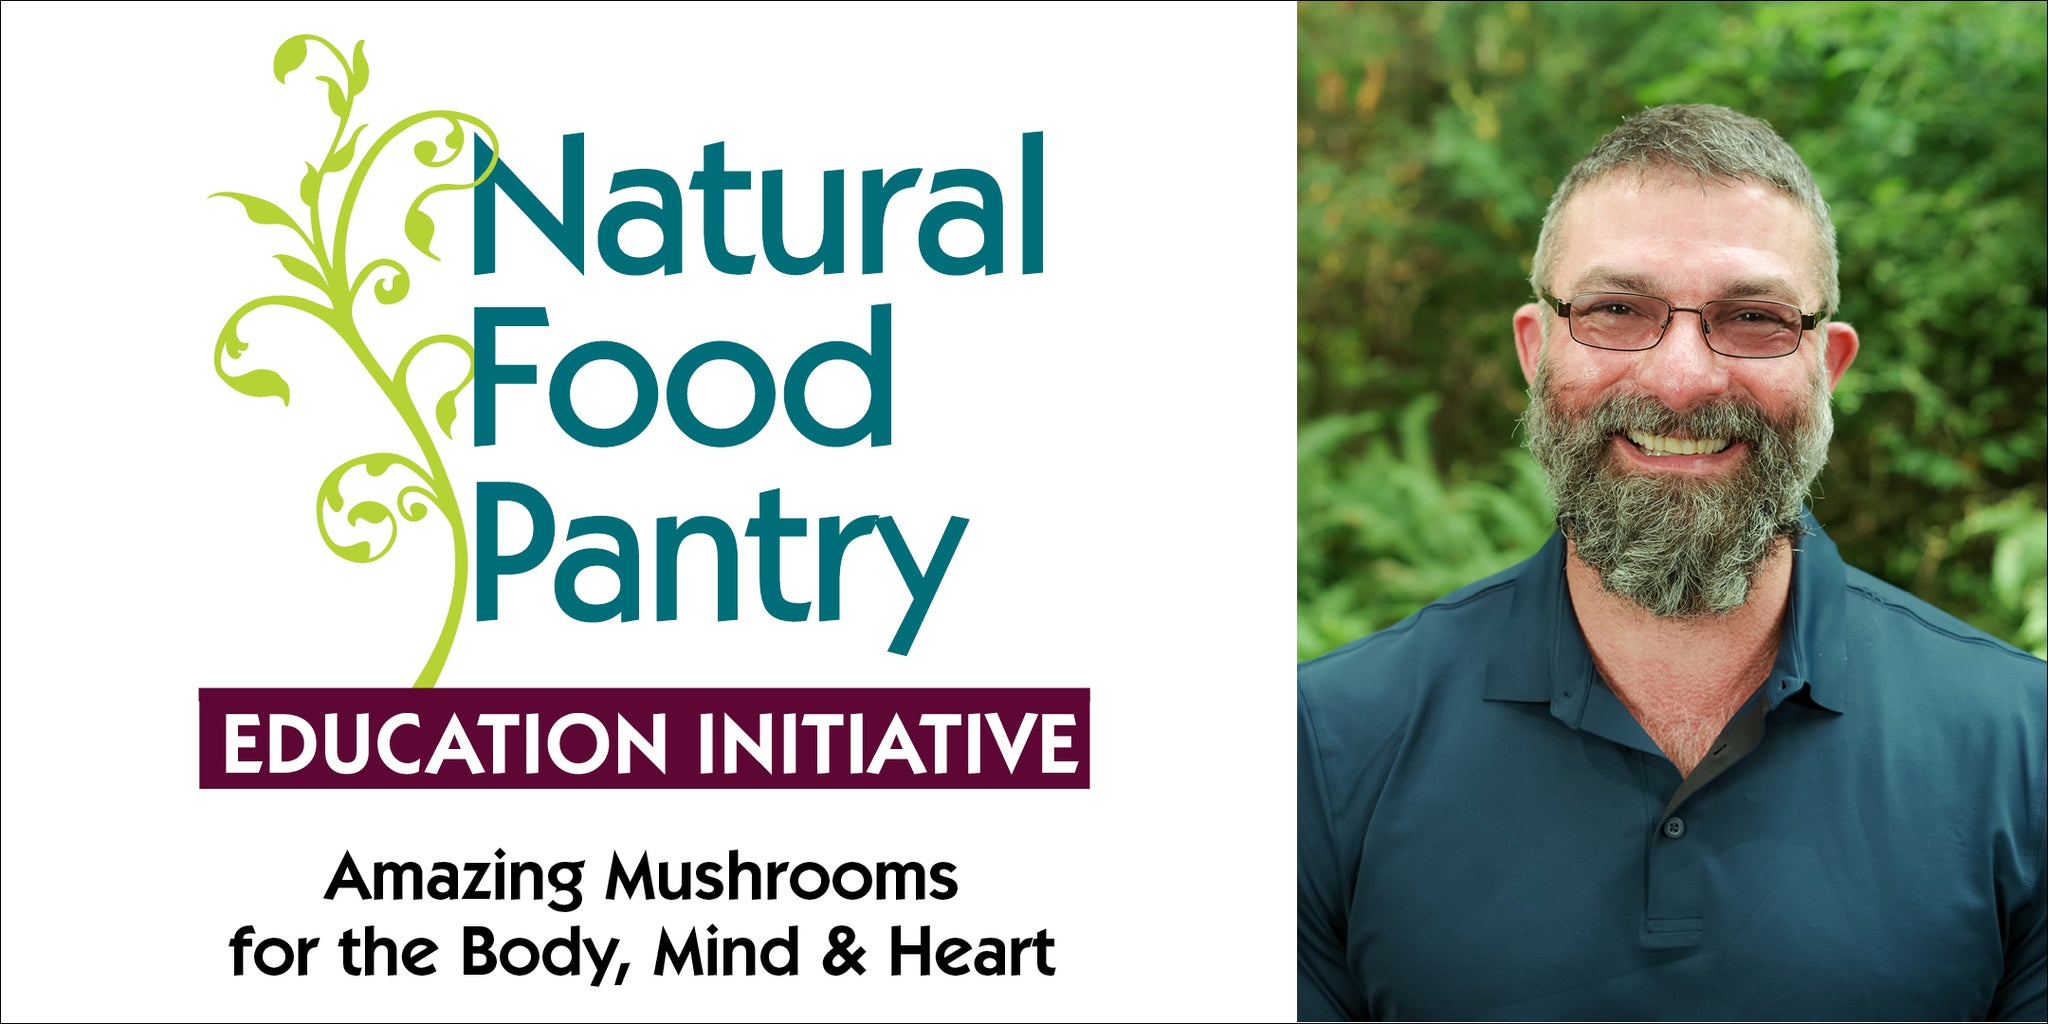 Jan 15: Amazing Mushrooms for the Body, Mind & Heart